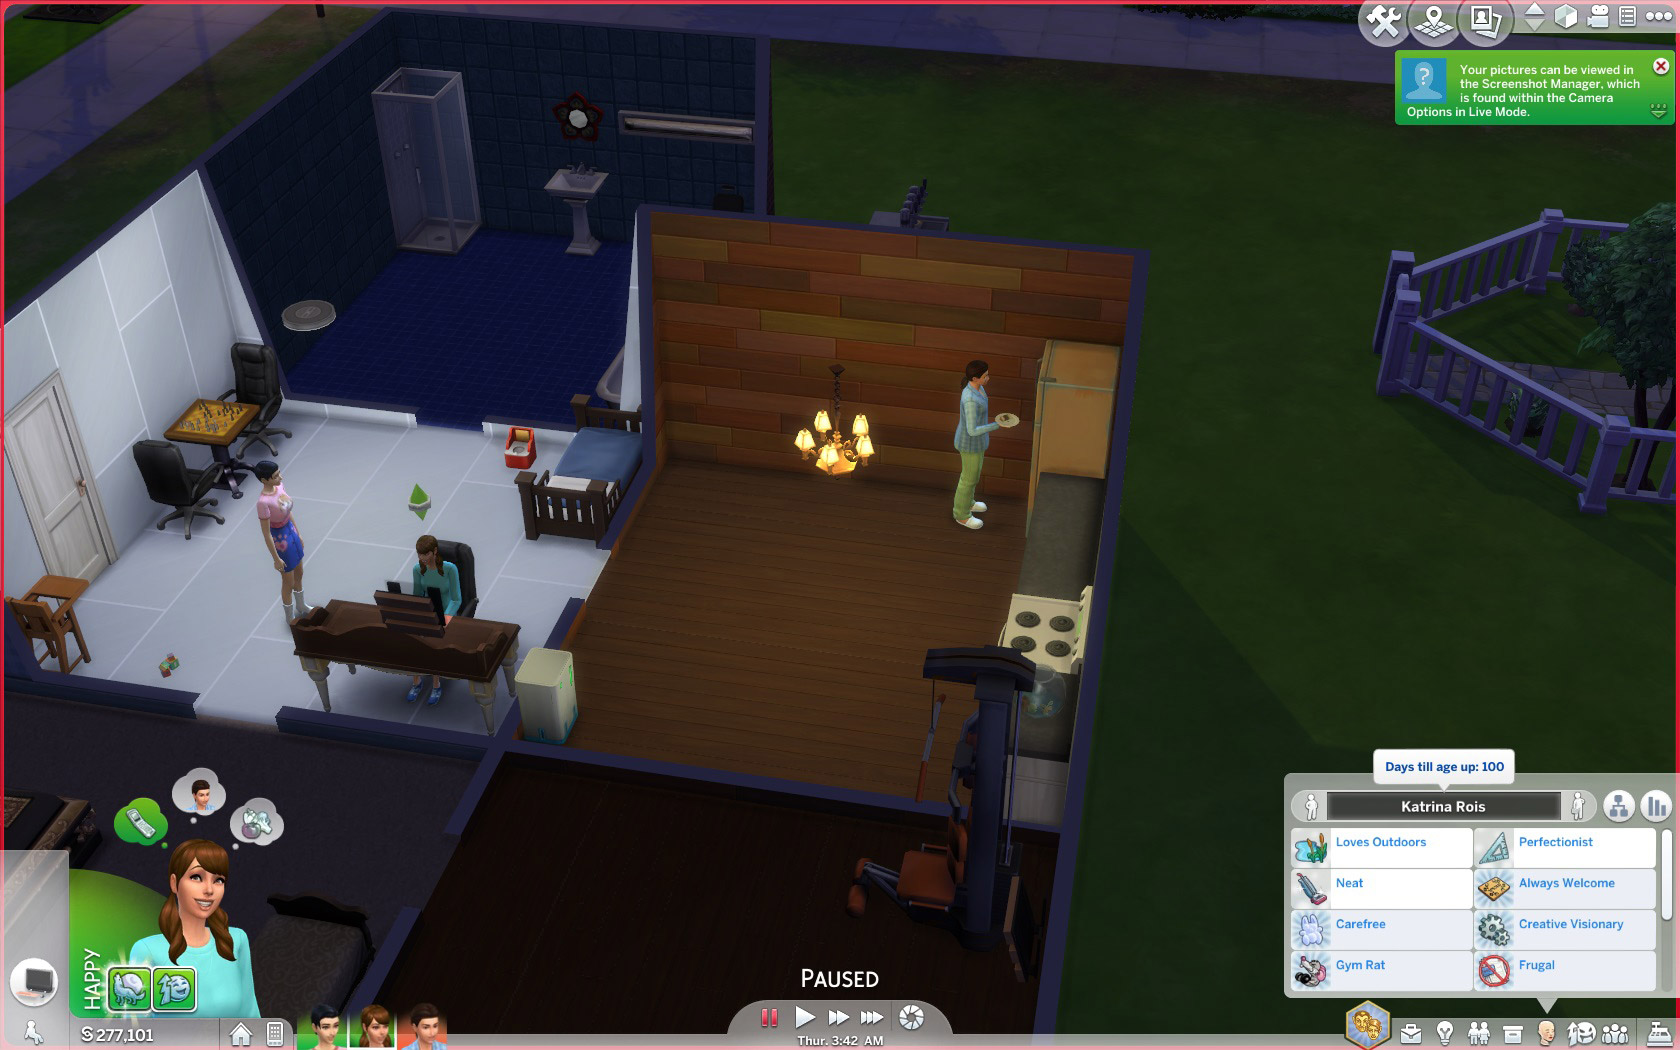 Vampire Aging Enabled - With Life Extension - The Sims 4 Catalog